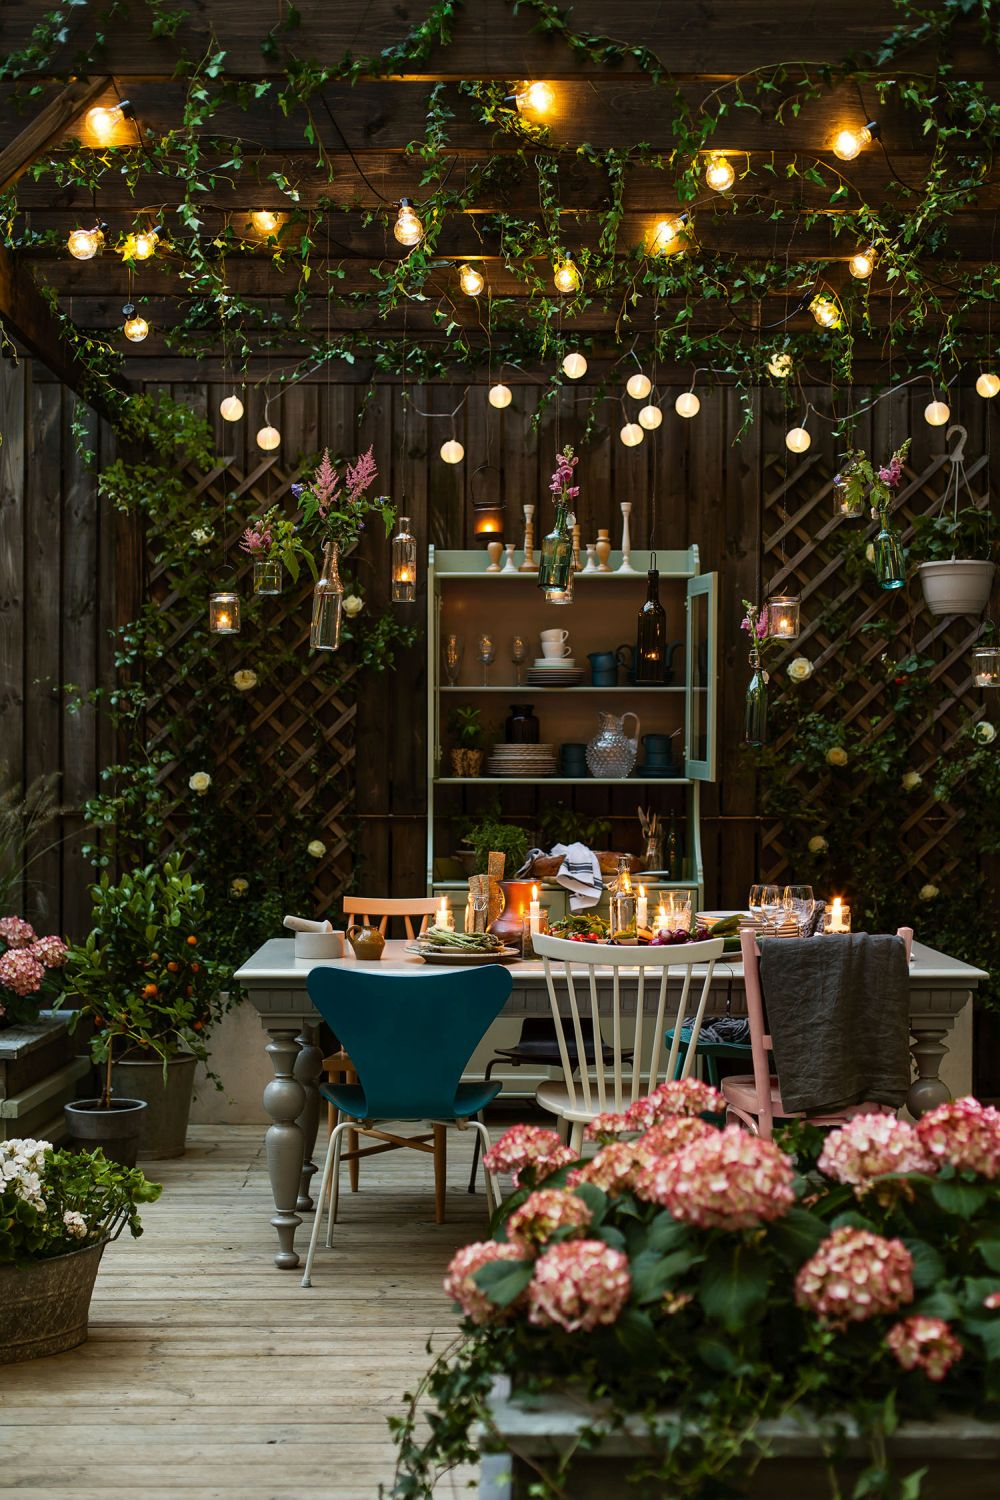 30 Cool Backyard Lighting Ideas For Magical Decors on Magical Backyard Ideas id=27057